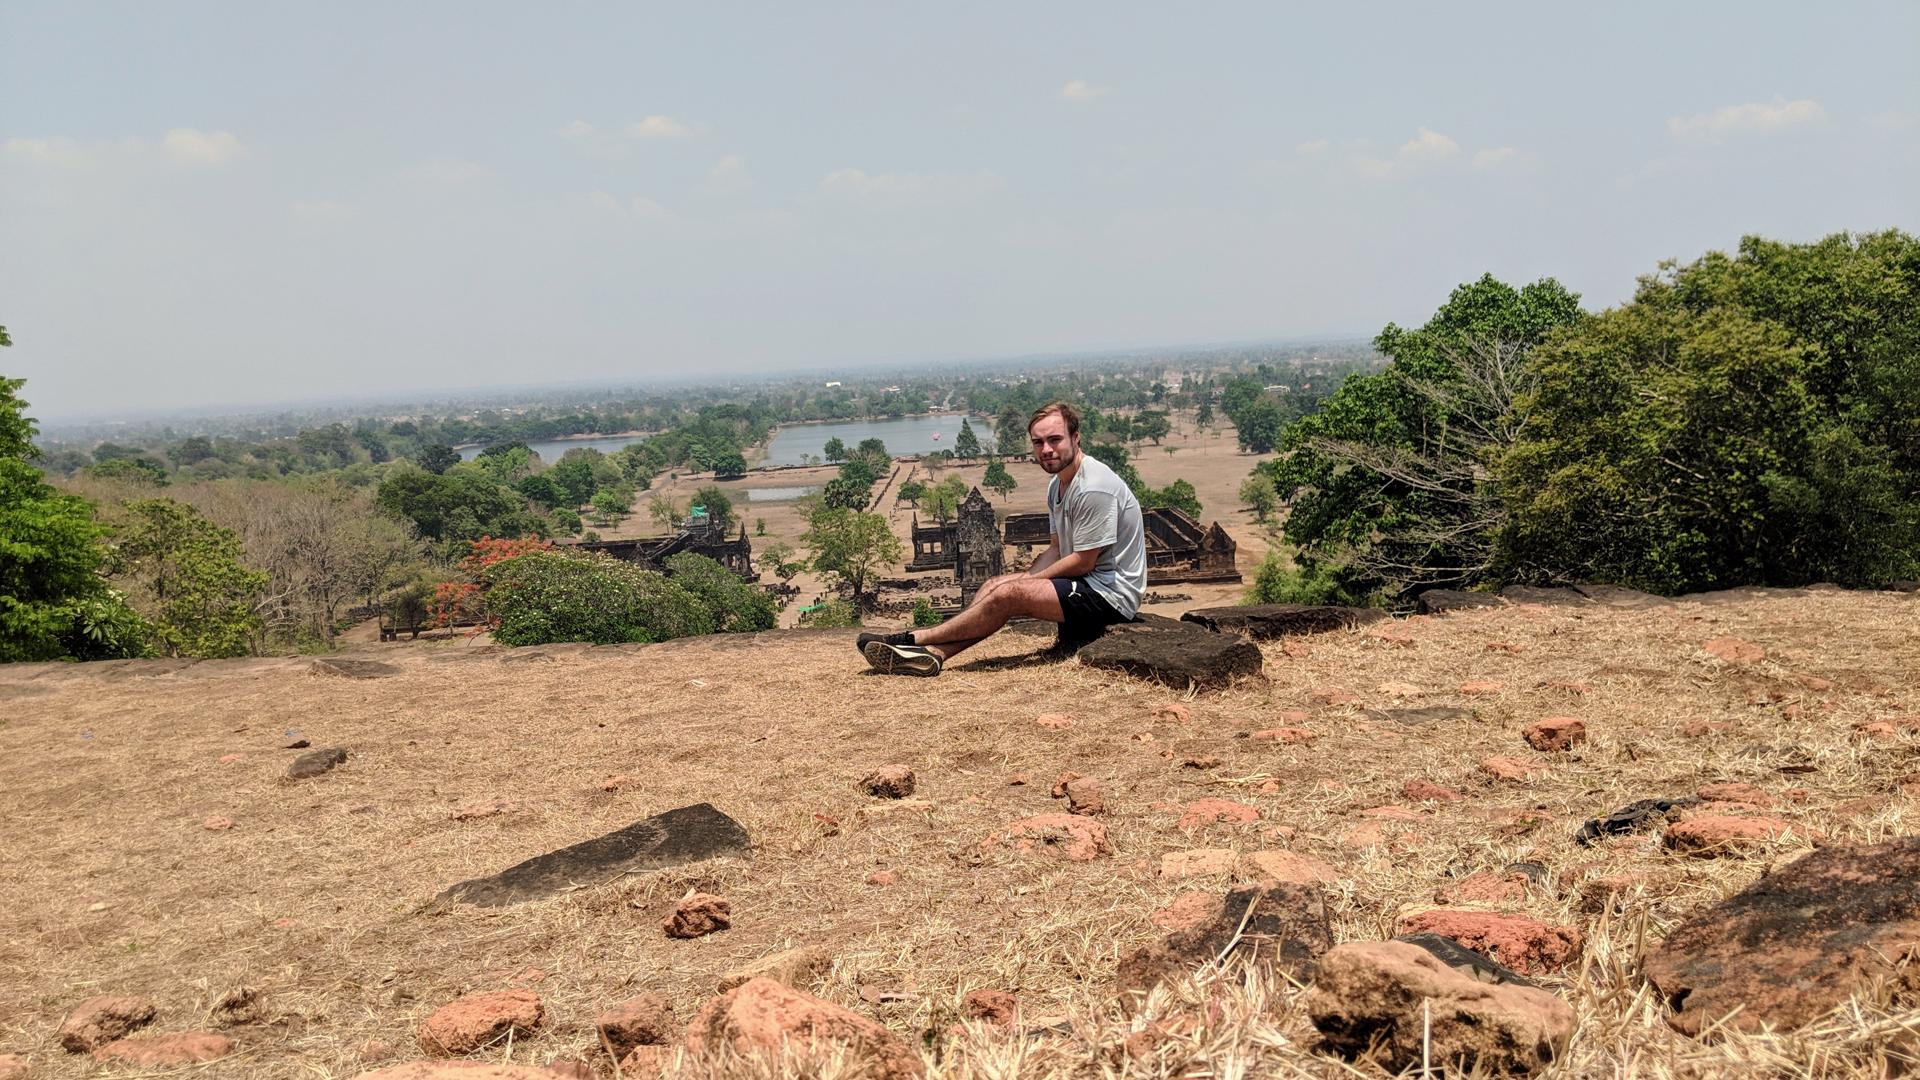 Wat Phou – The Underrated Angkor Wat-Style Temple in Laos